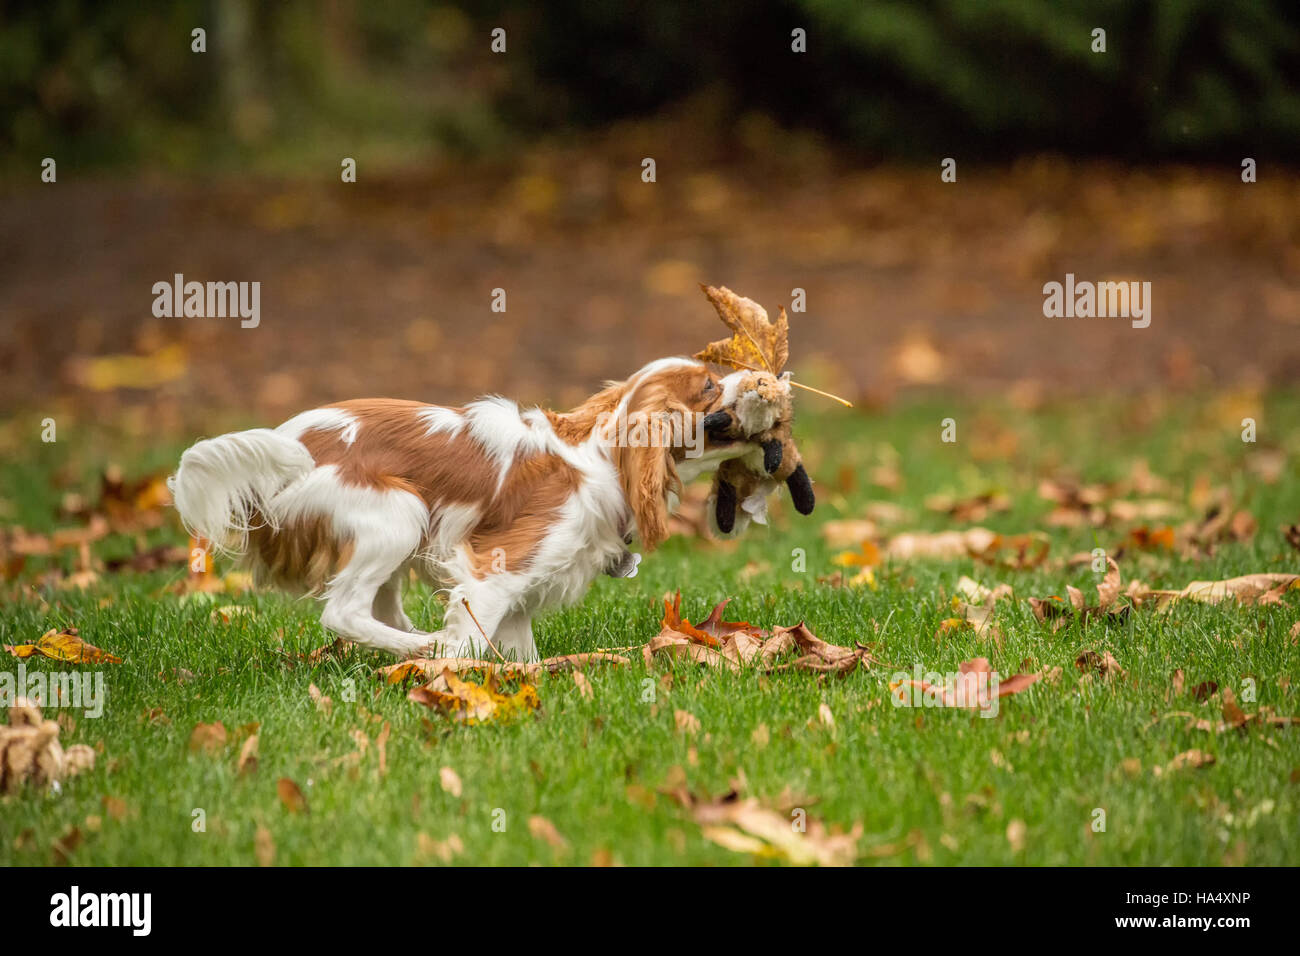 Six month old Cavalier King Charles Spaniel puppy running outside with her stuffed animal toy on an Autumn day Stock Photo